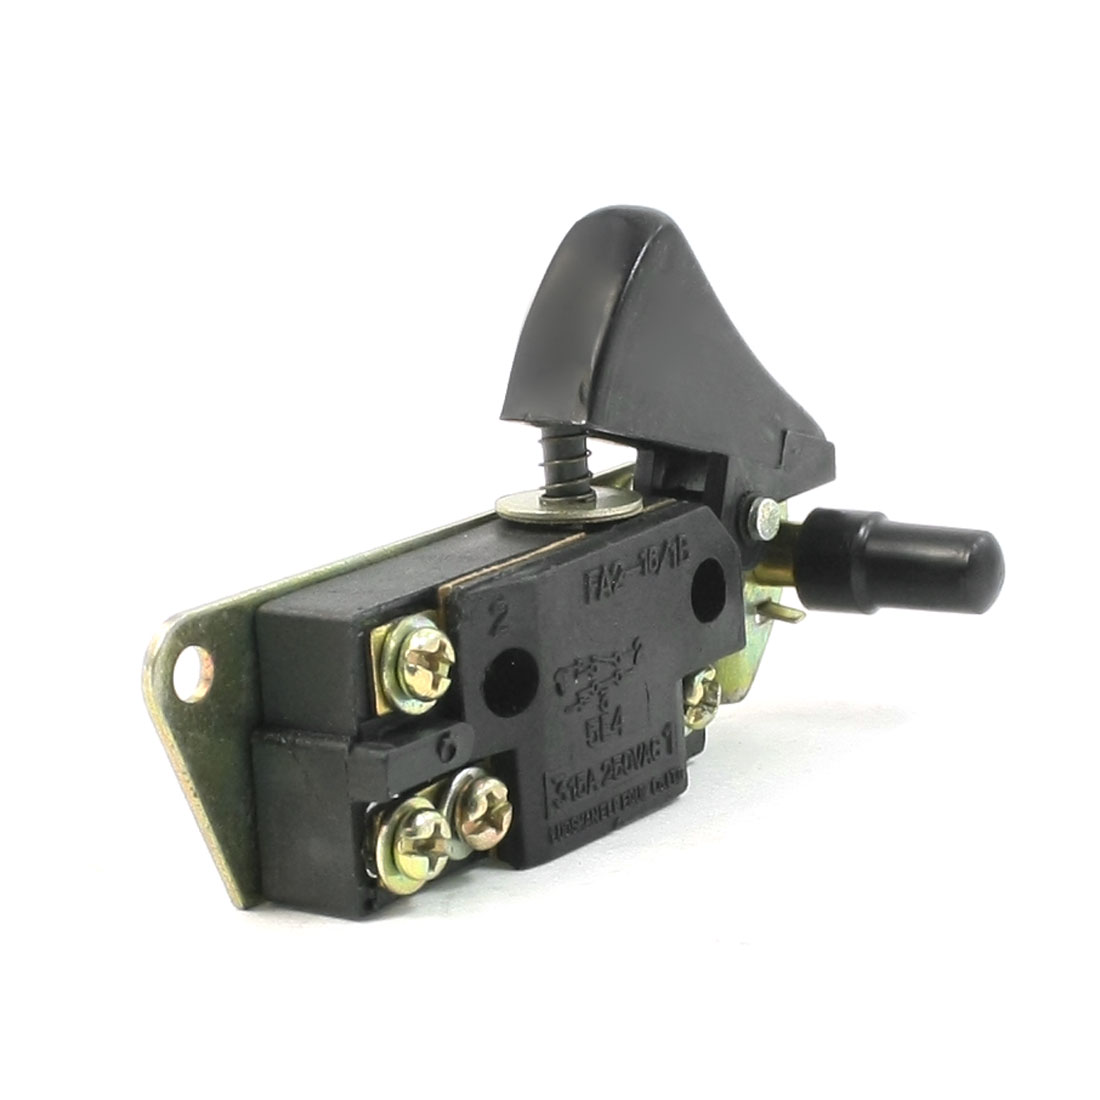 AC 250V/15A SPST Off-Lock Trigger Switch for Makita 5016 Electric Chain Saw